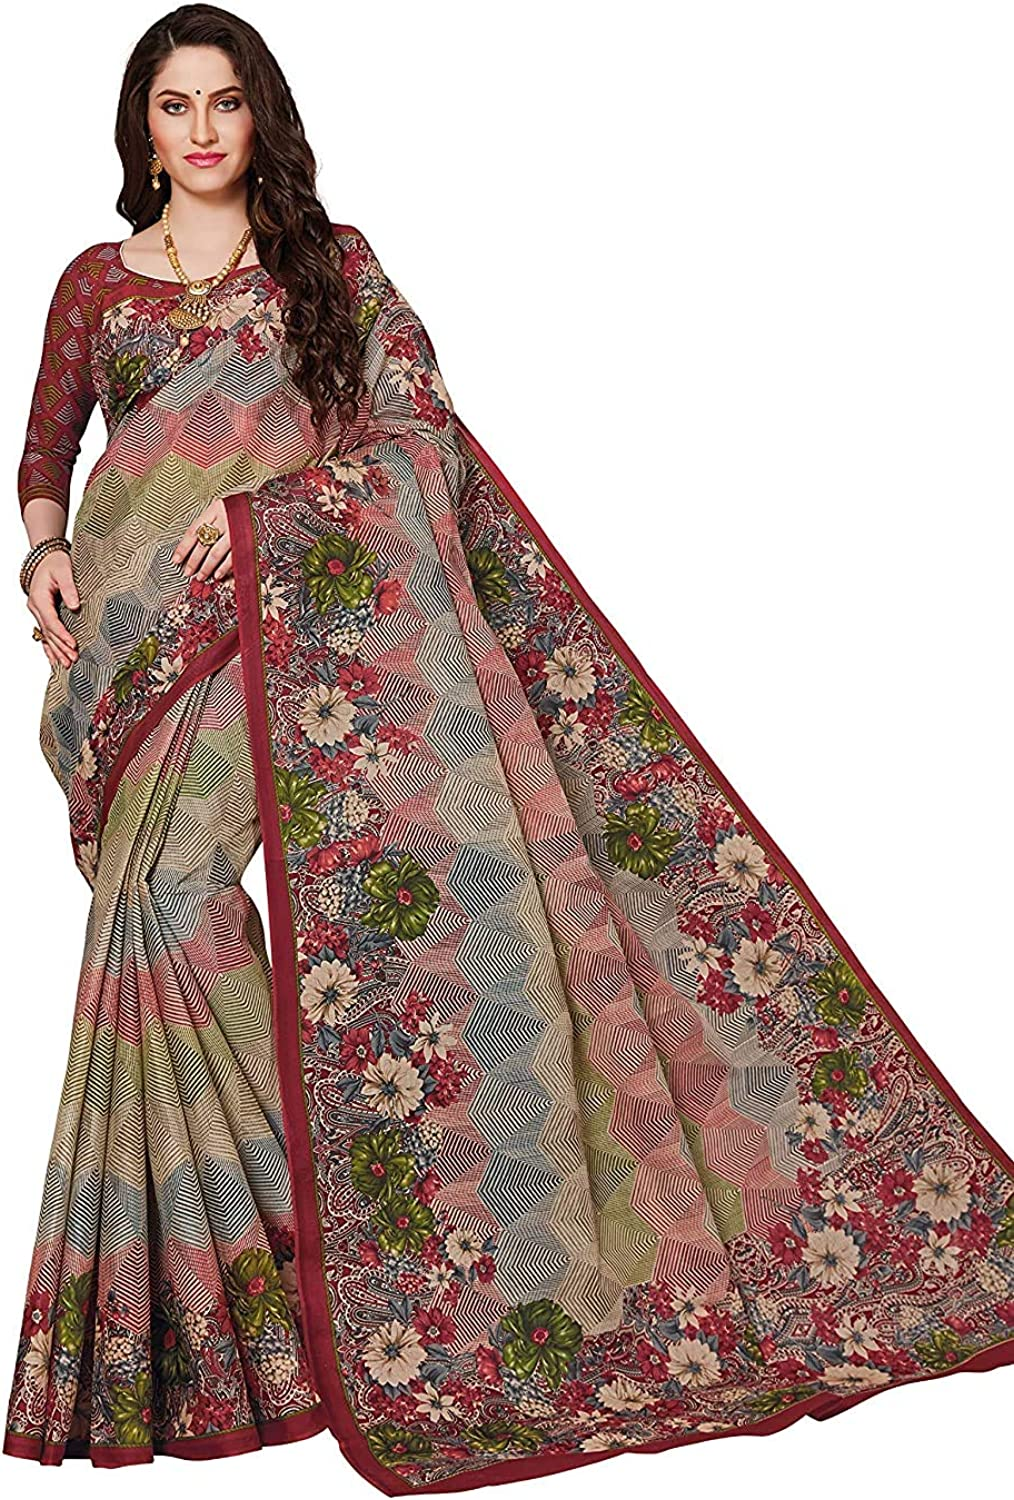 Women's Pure Cotton Printed Saree with I Piece Blouse Unstitched Superior free